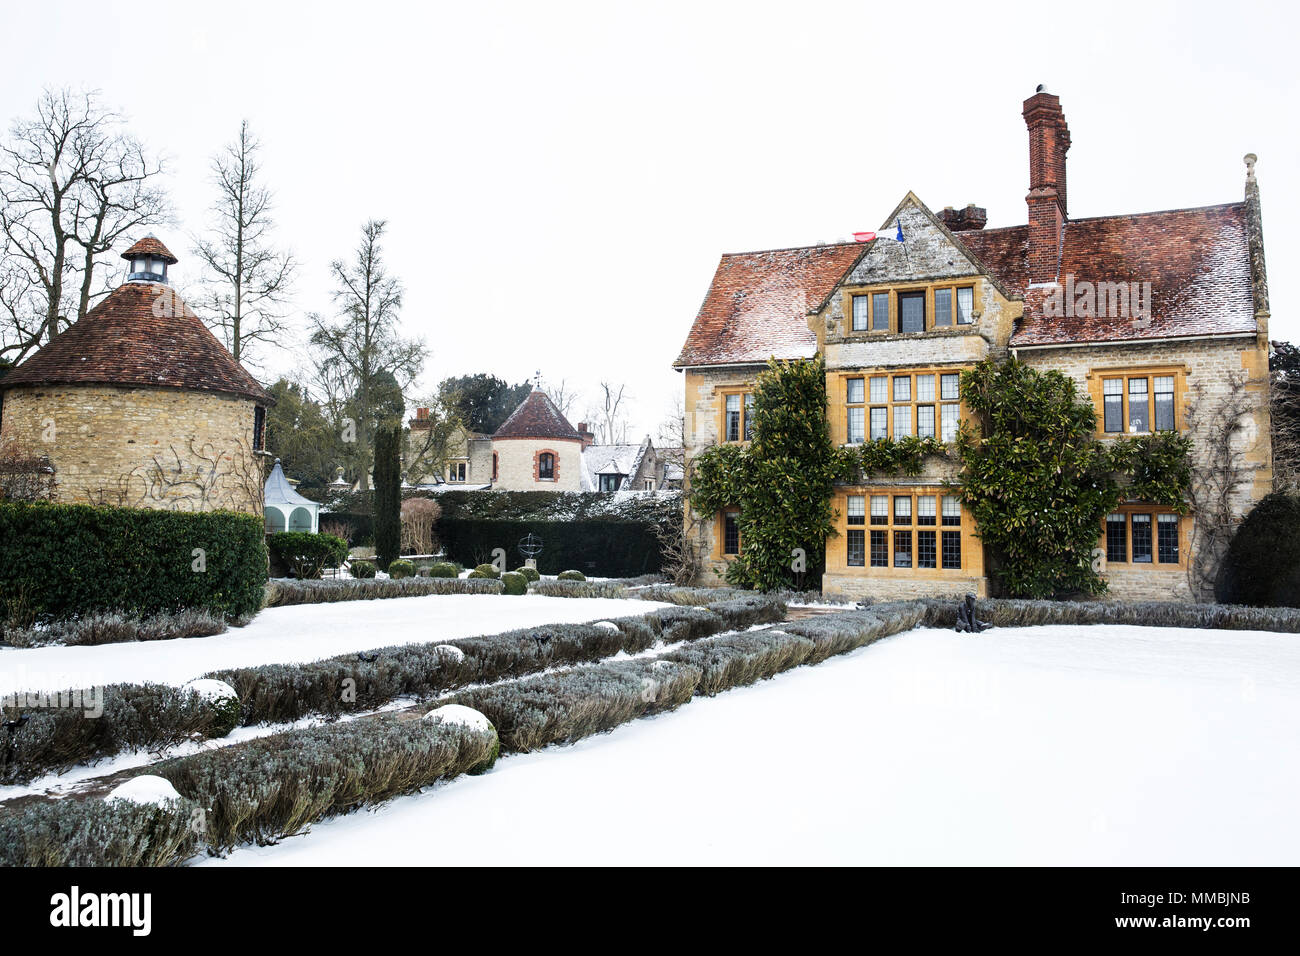 Historic 17th century manor house with tall chimneys, a hotel with snow covered grounds in winter. - Stock Image